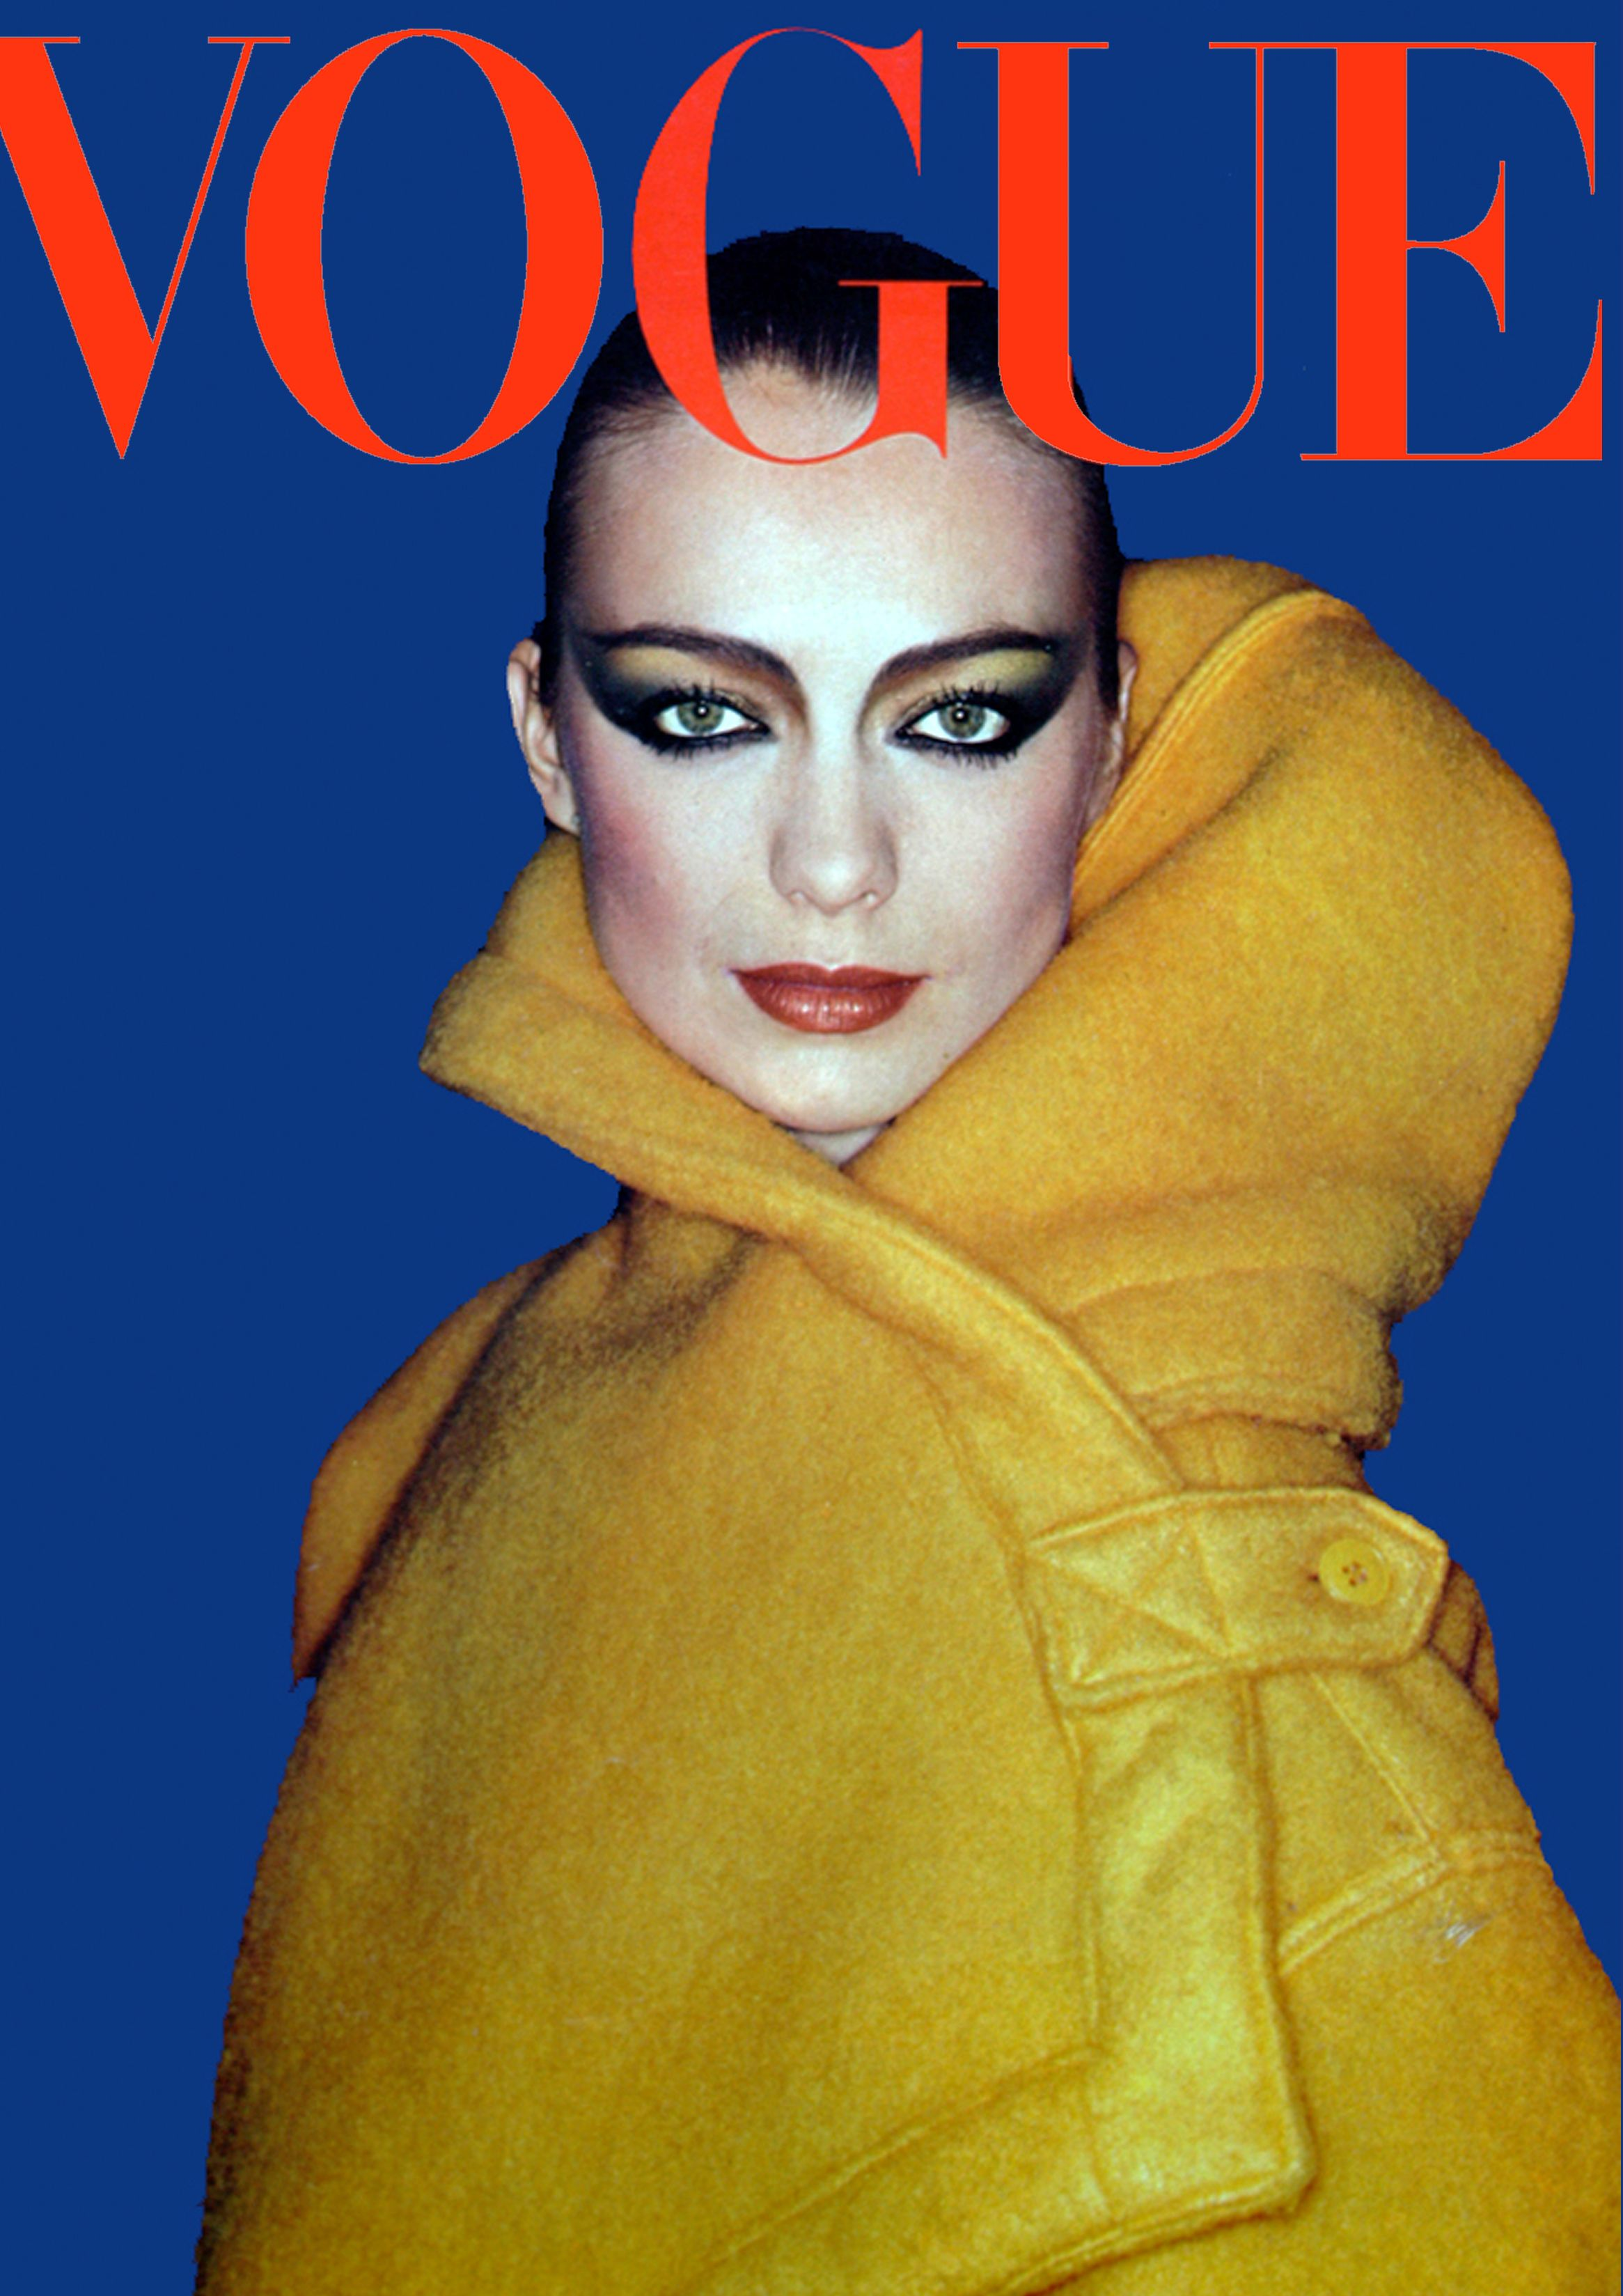 Vogue Magazine not sure what year this is from Ive seen both 1976 and 1981, it looks more 80s to me.